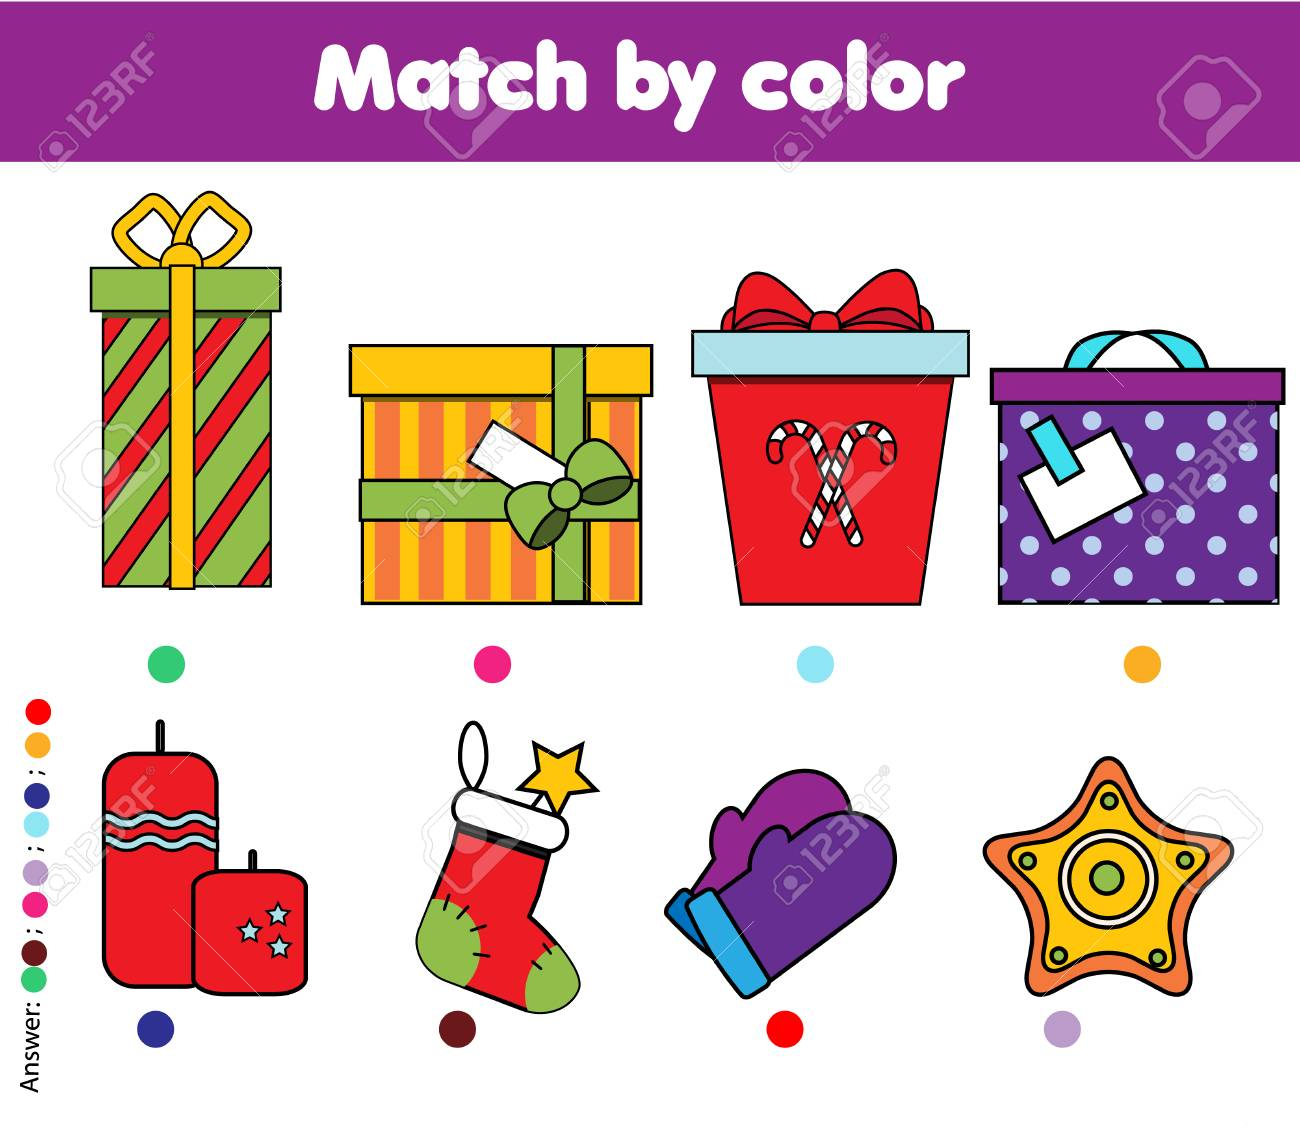 Matching children educational game. Match by color kids activity. New Year, Christmas gifts theme. - 90656793